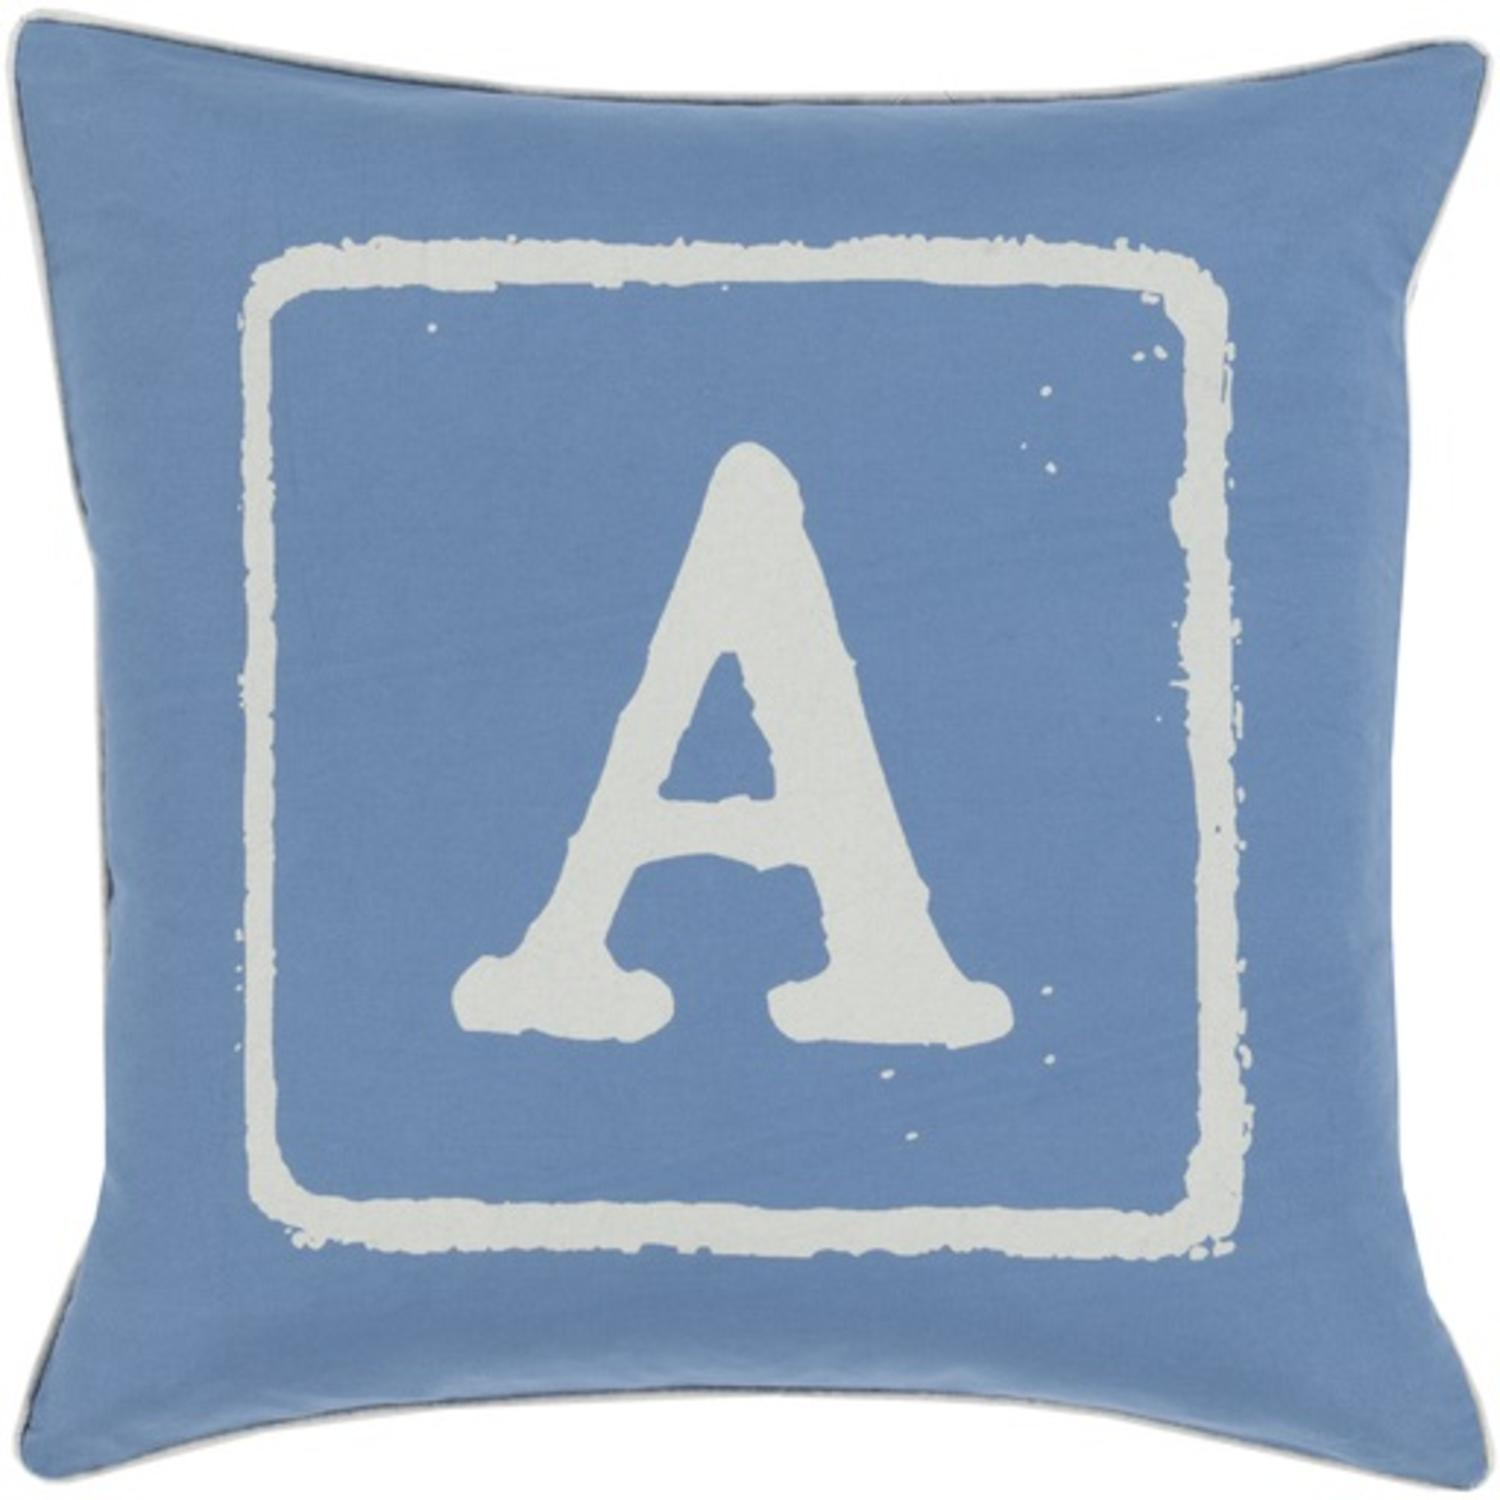 "18"" Blue and Beige ""A"" Big Kid Blocks Decorative Throw Pillow - Down Filler"